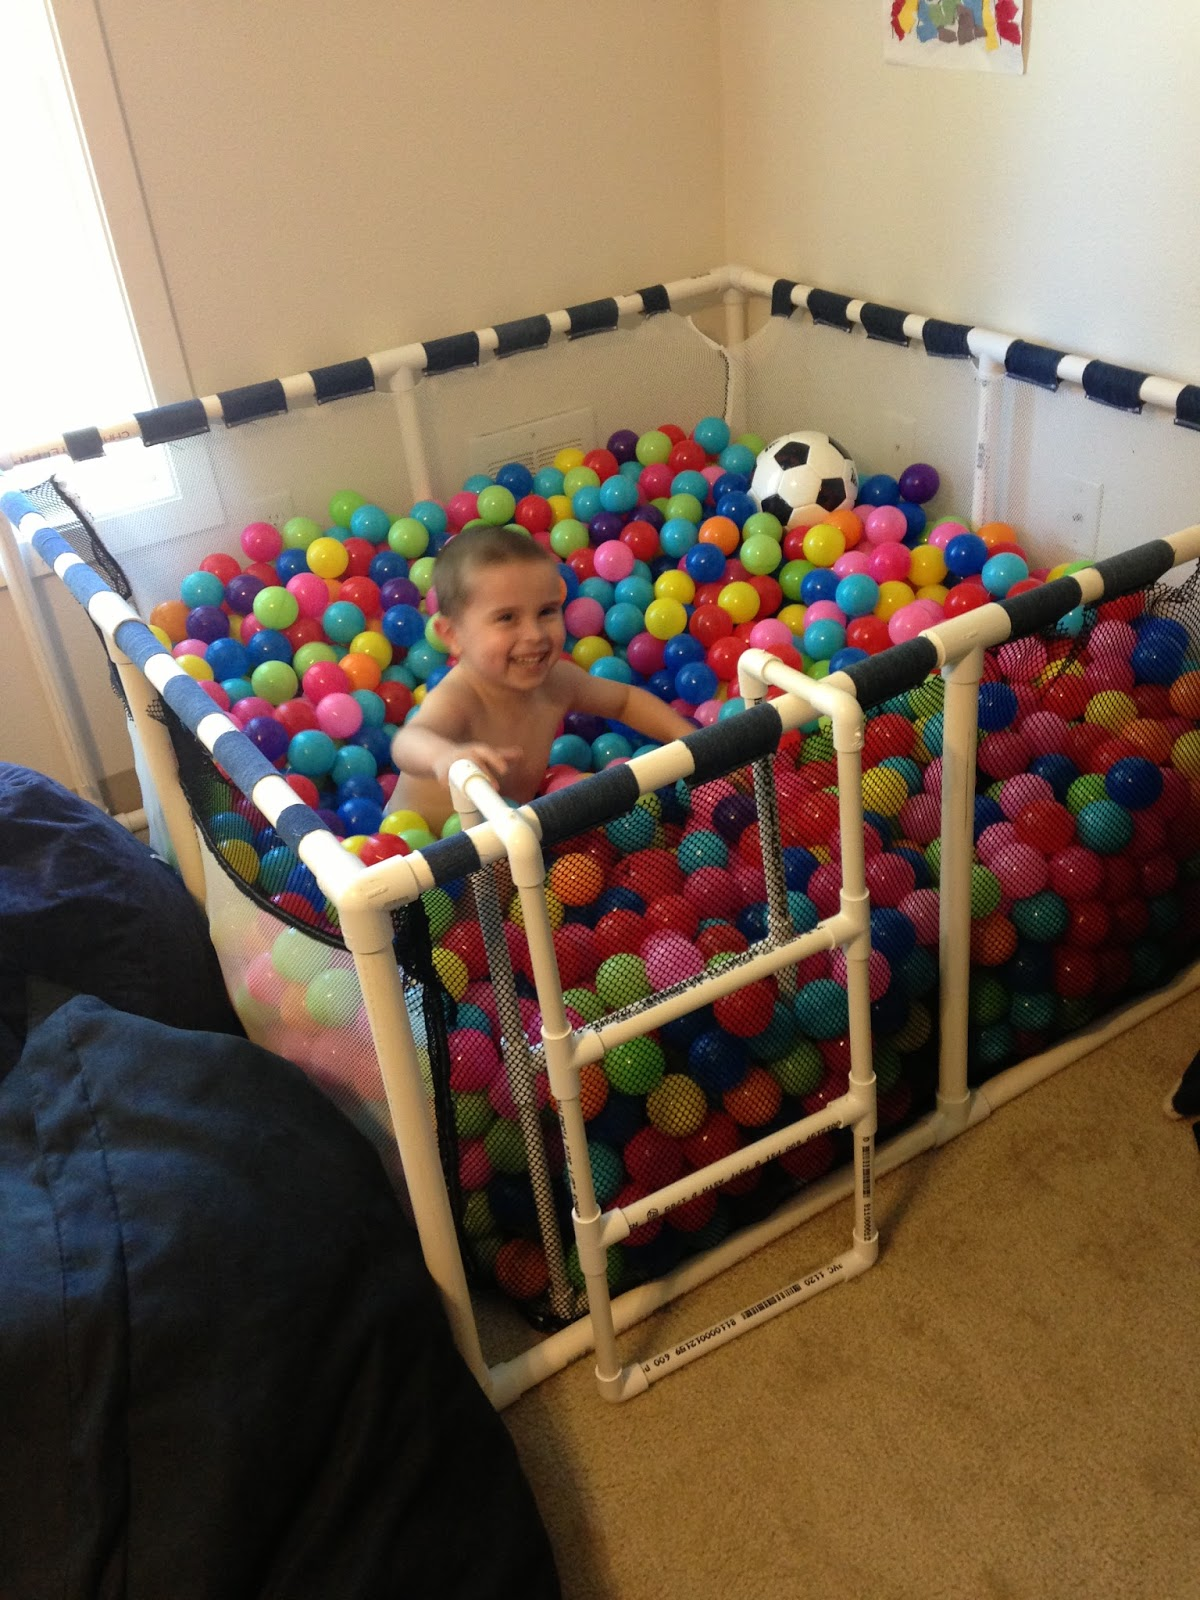 Make a ball pit for your child